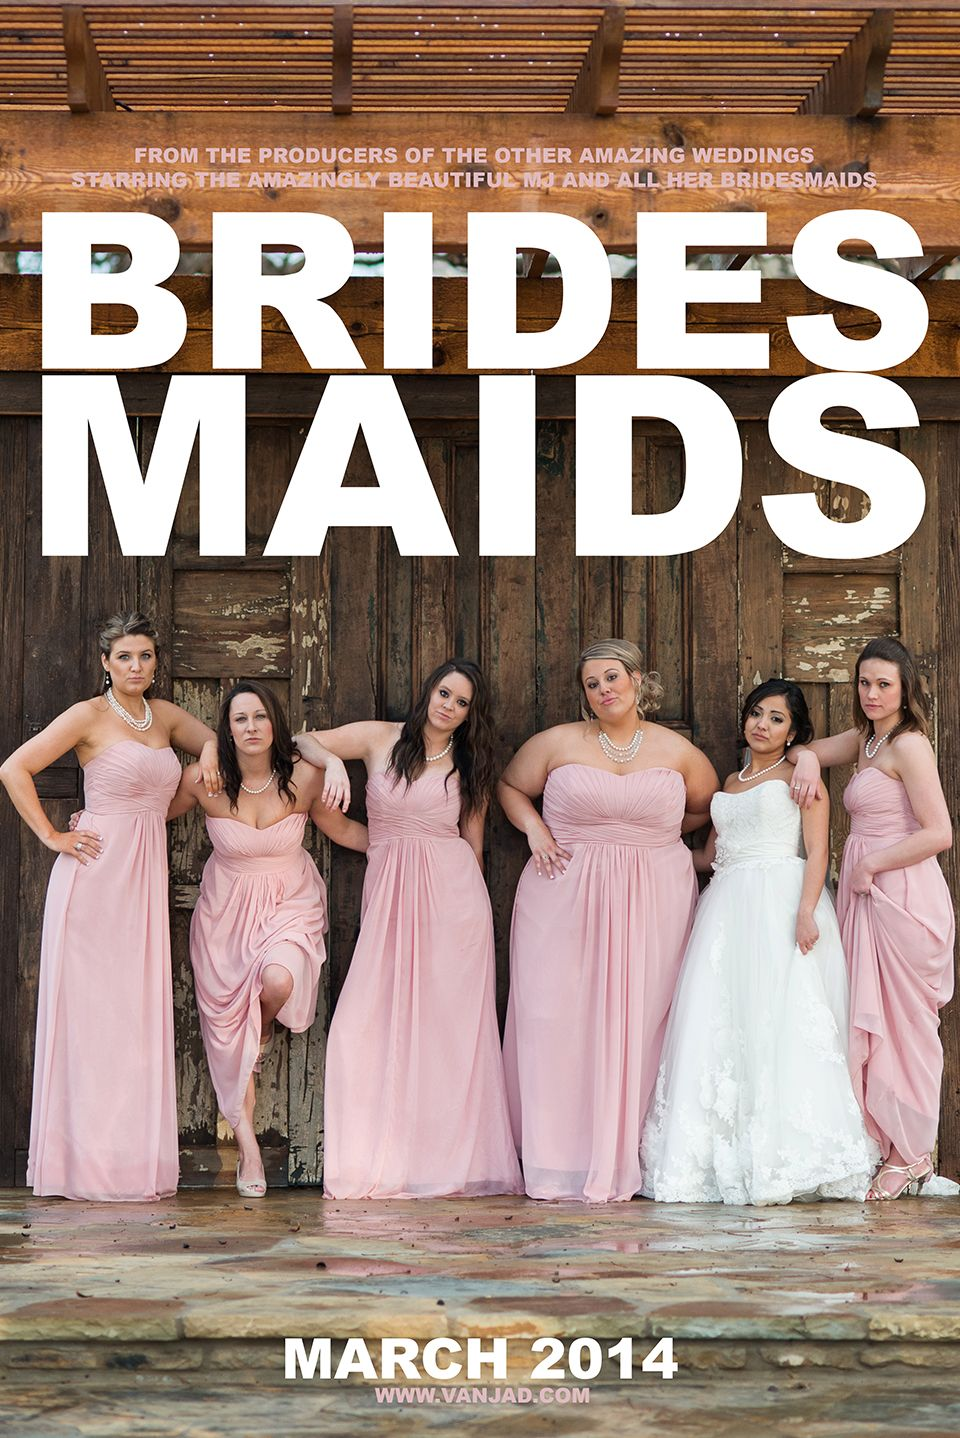 The n at hardway ranch wedding the bridesmaids movie poster www the n at hardway ranch wedding the bridesmaids movie poster vanjad ombrellifo Images